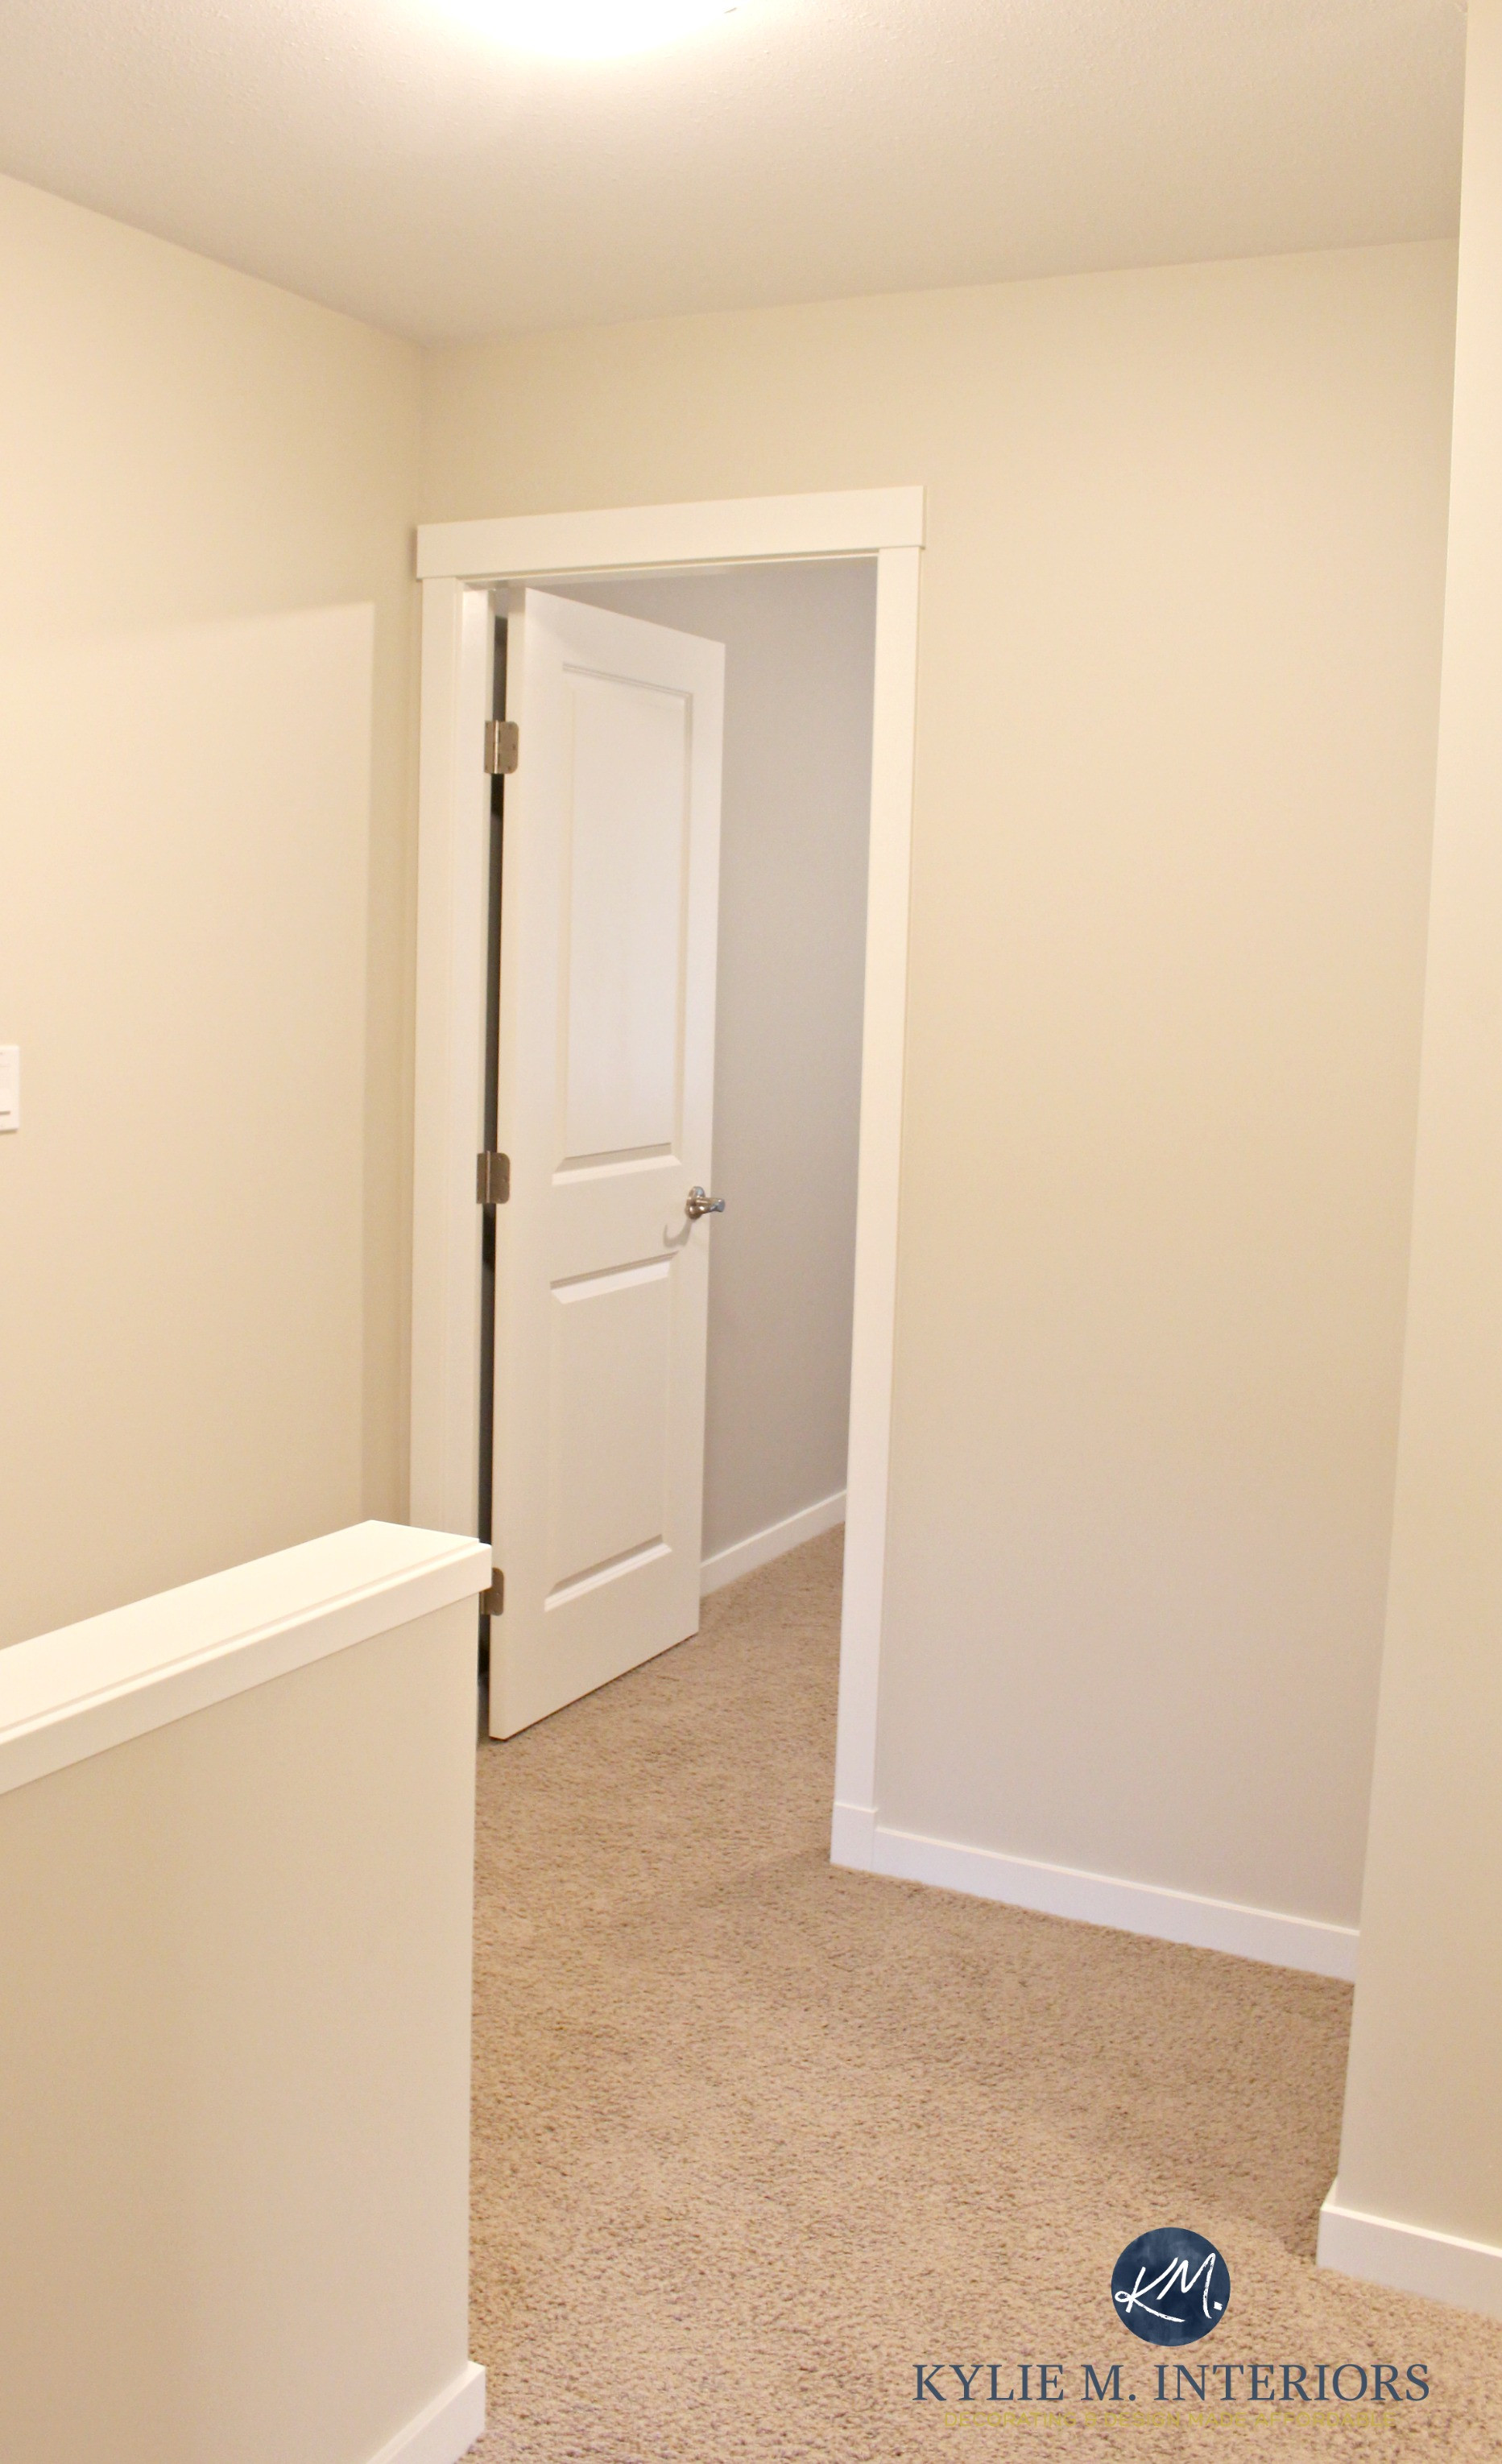 Best ideas about Tan Paint Colors . Save or Pin Sherwin Williams Canvas Tan is a good paint colour for Now.